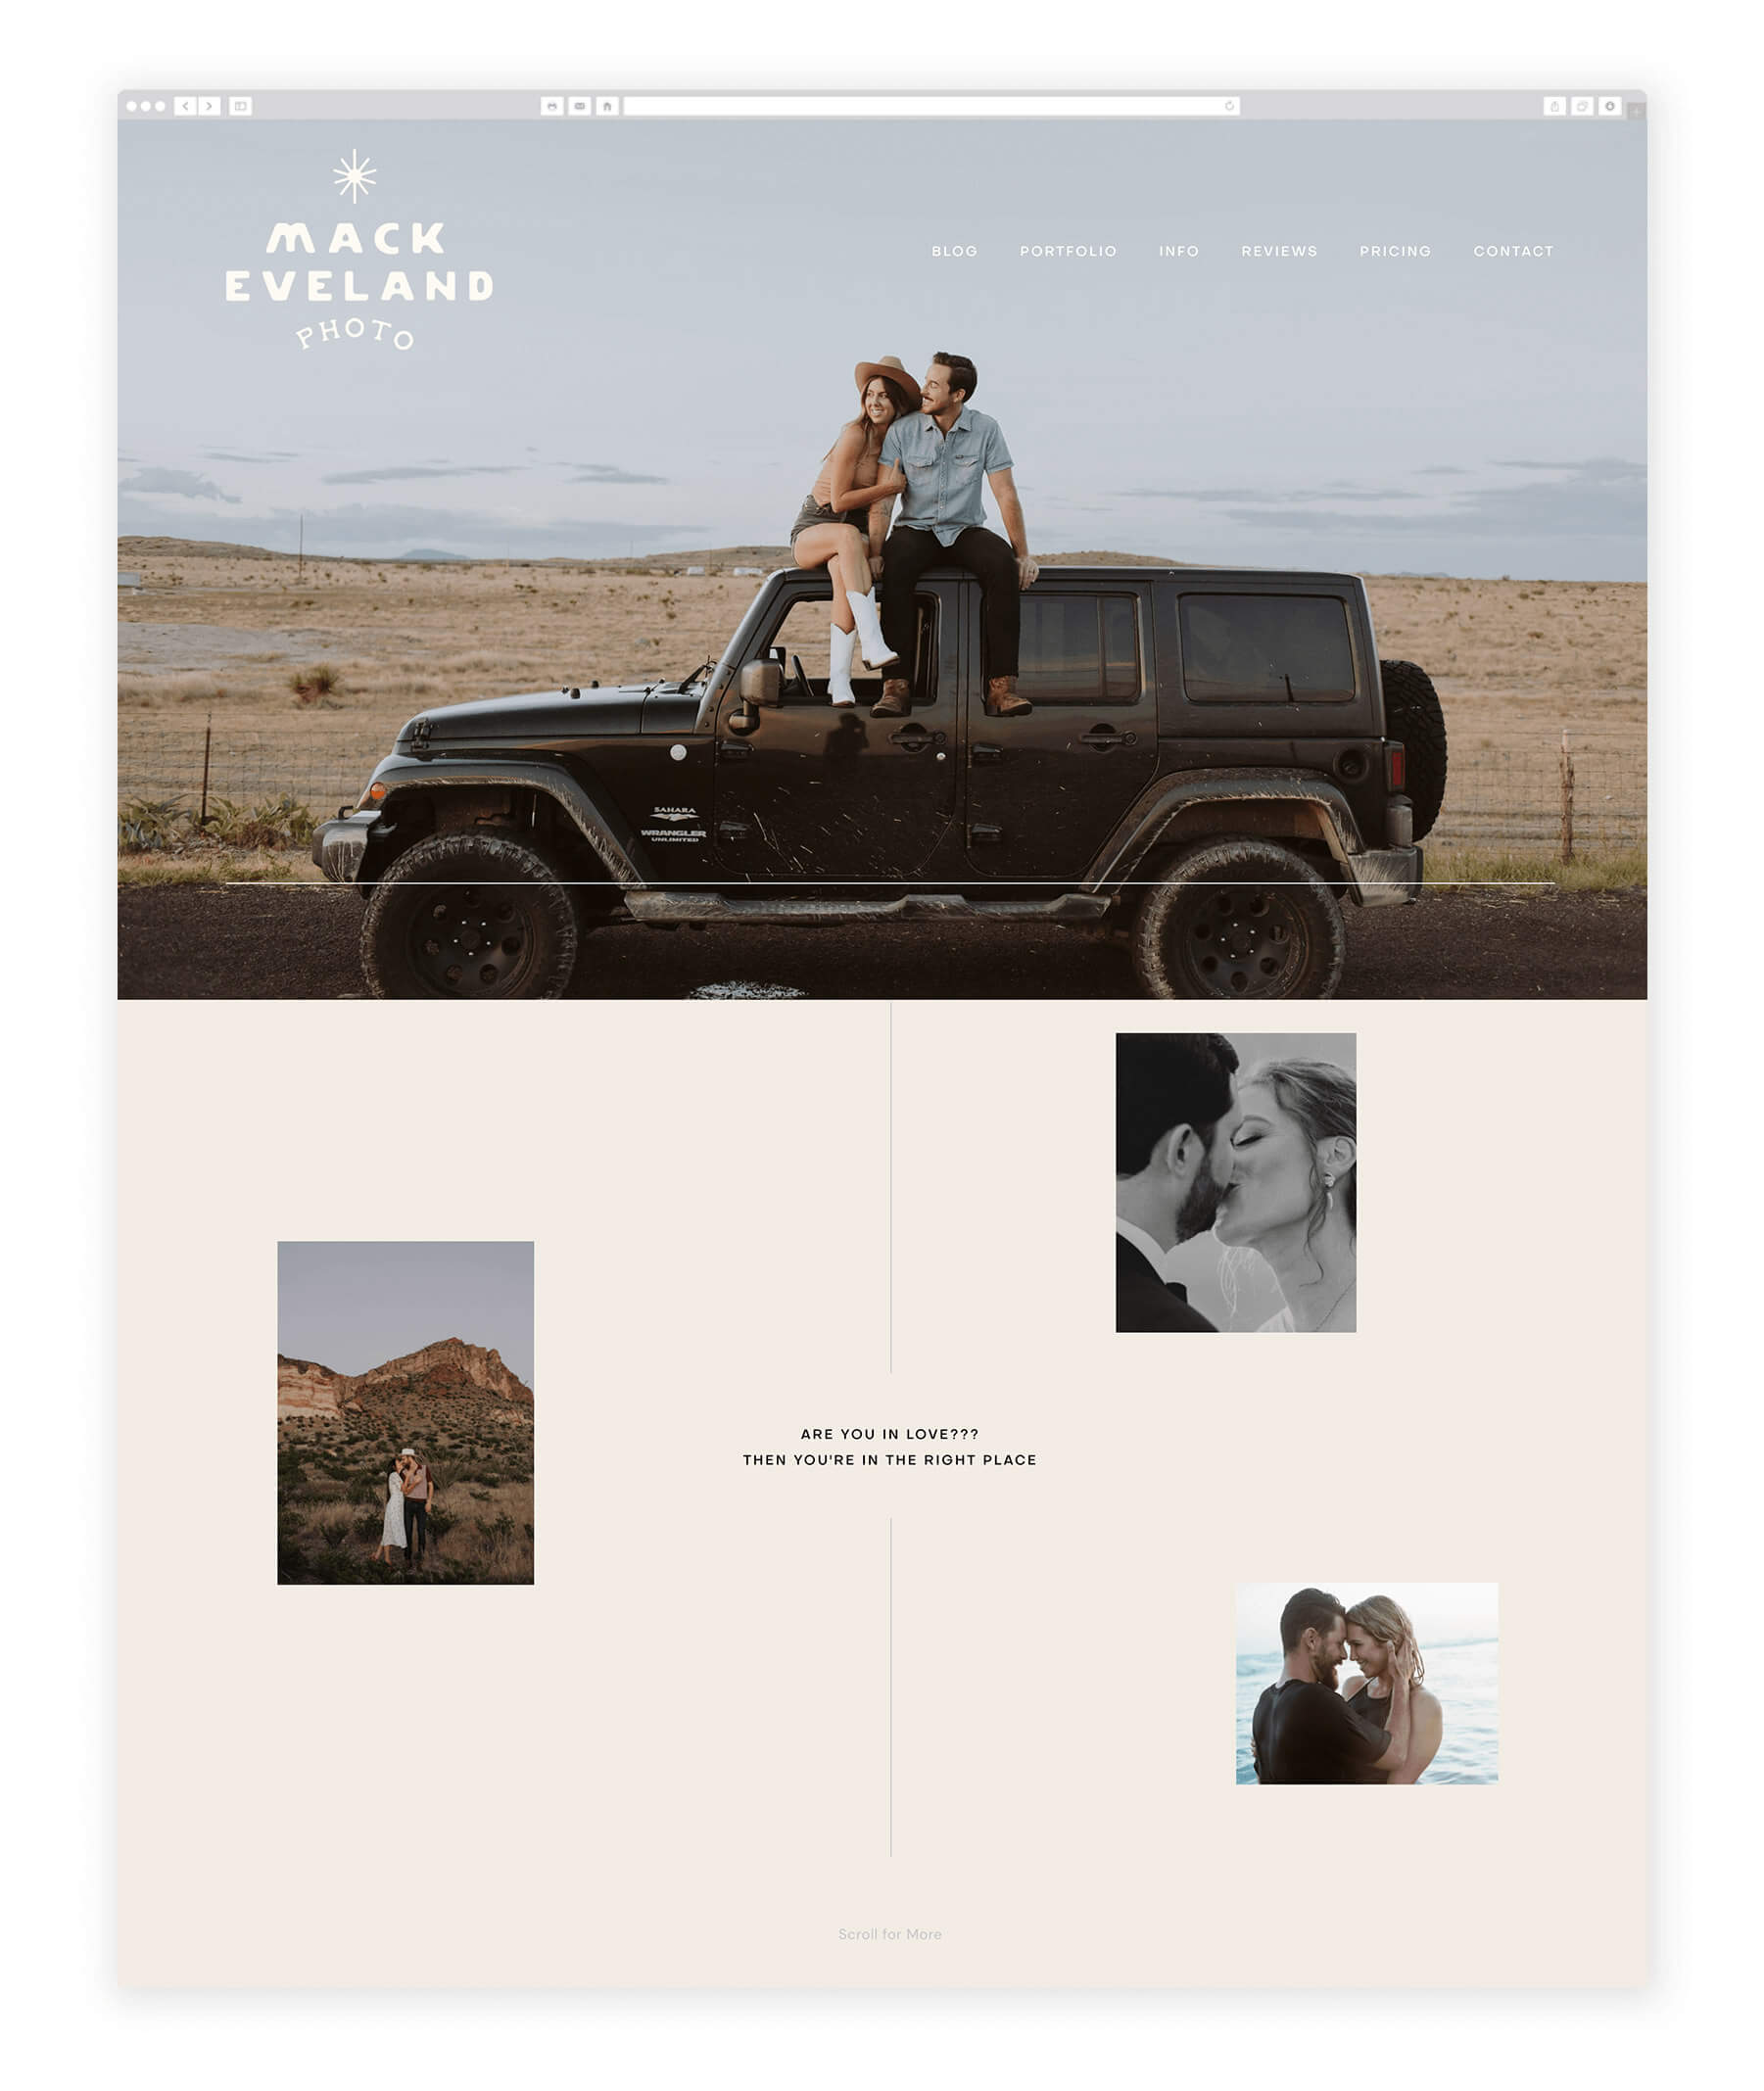 mack-eveland-wordpress-website-verso-theme